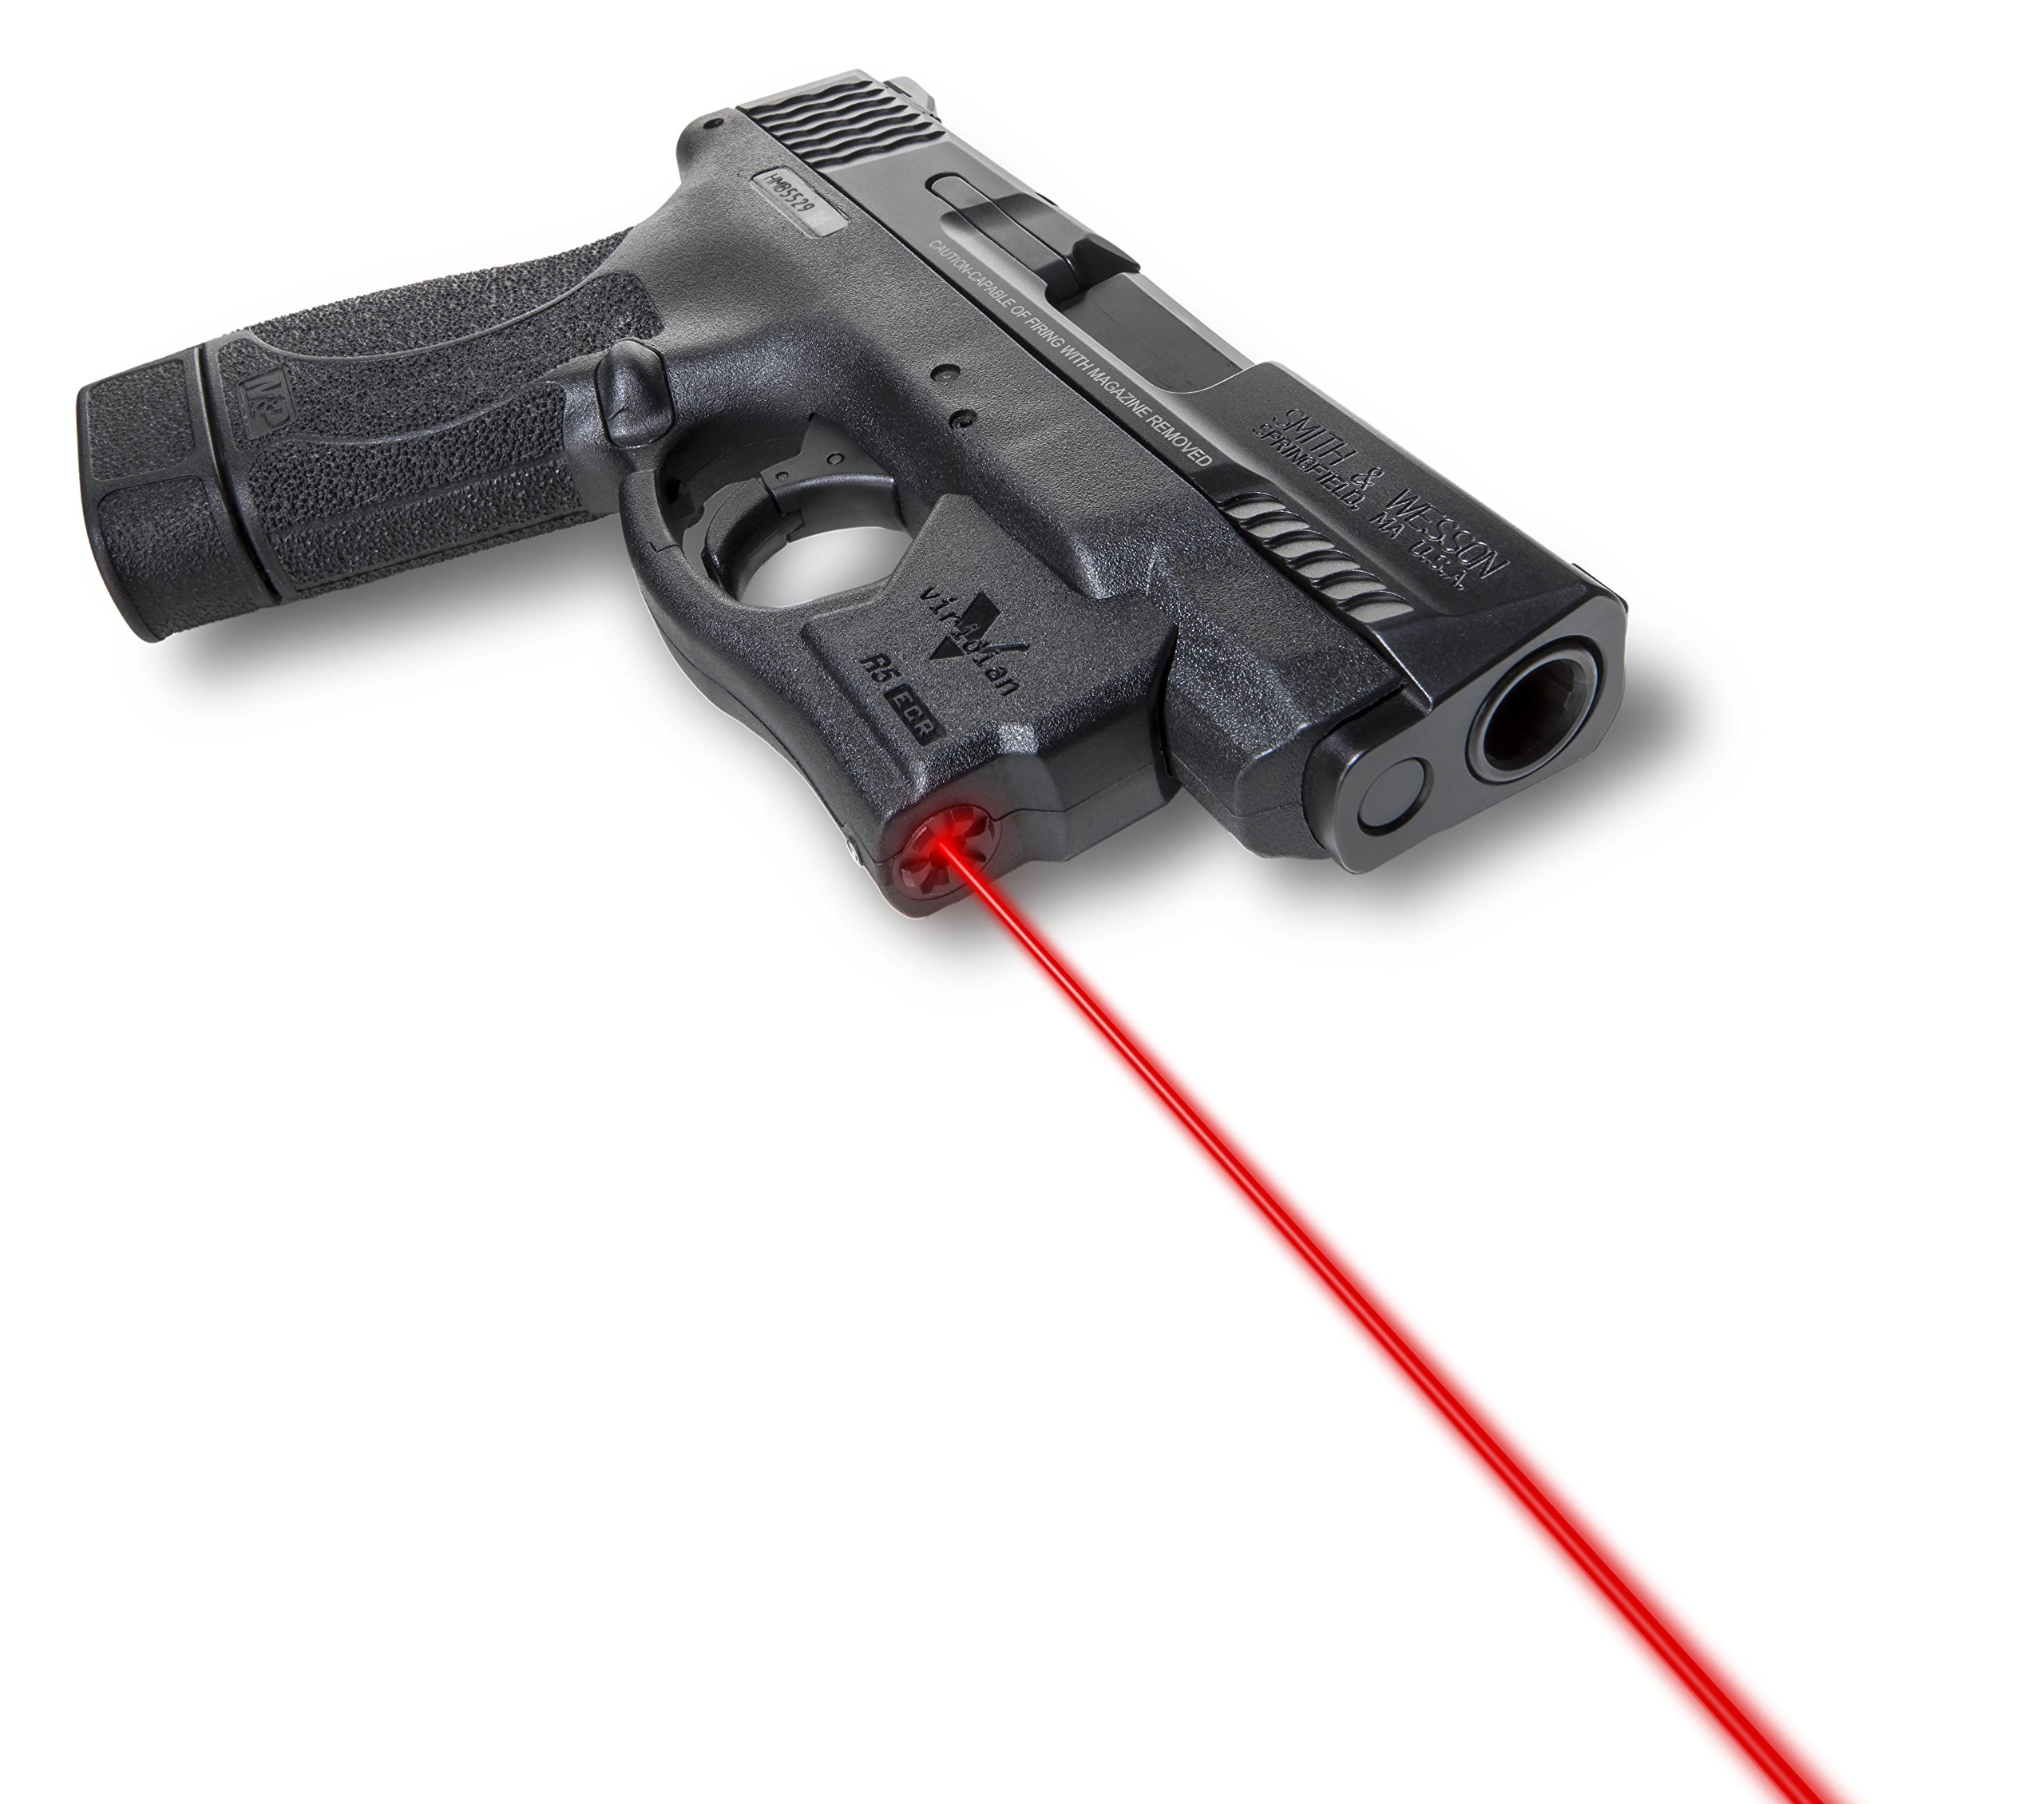 VIRIDIAN WEAPON TECHNOLOGIES, Reactor 5 Gen II Red Laser, Smith & Wesson M&P Shield with ECR Instant On Holster, Black, Fits: S & W M & P Shield by VIRIDIAN WEAPON TECHNOLOGIES